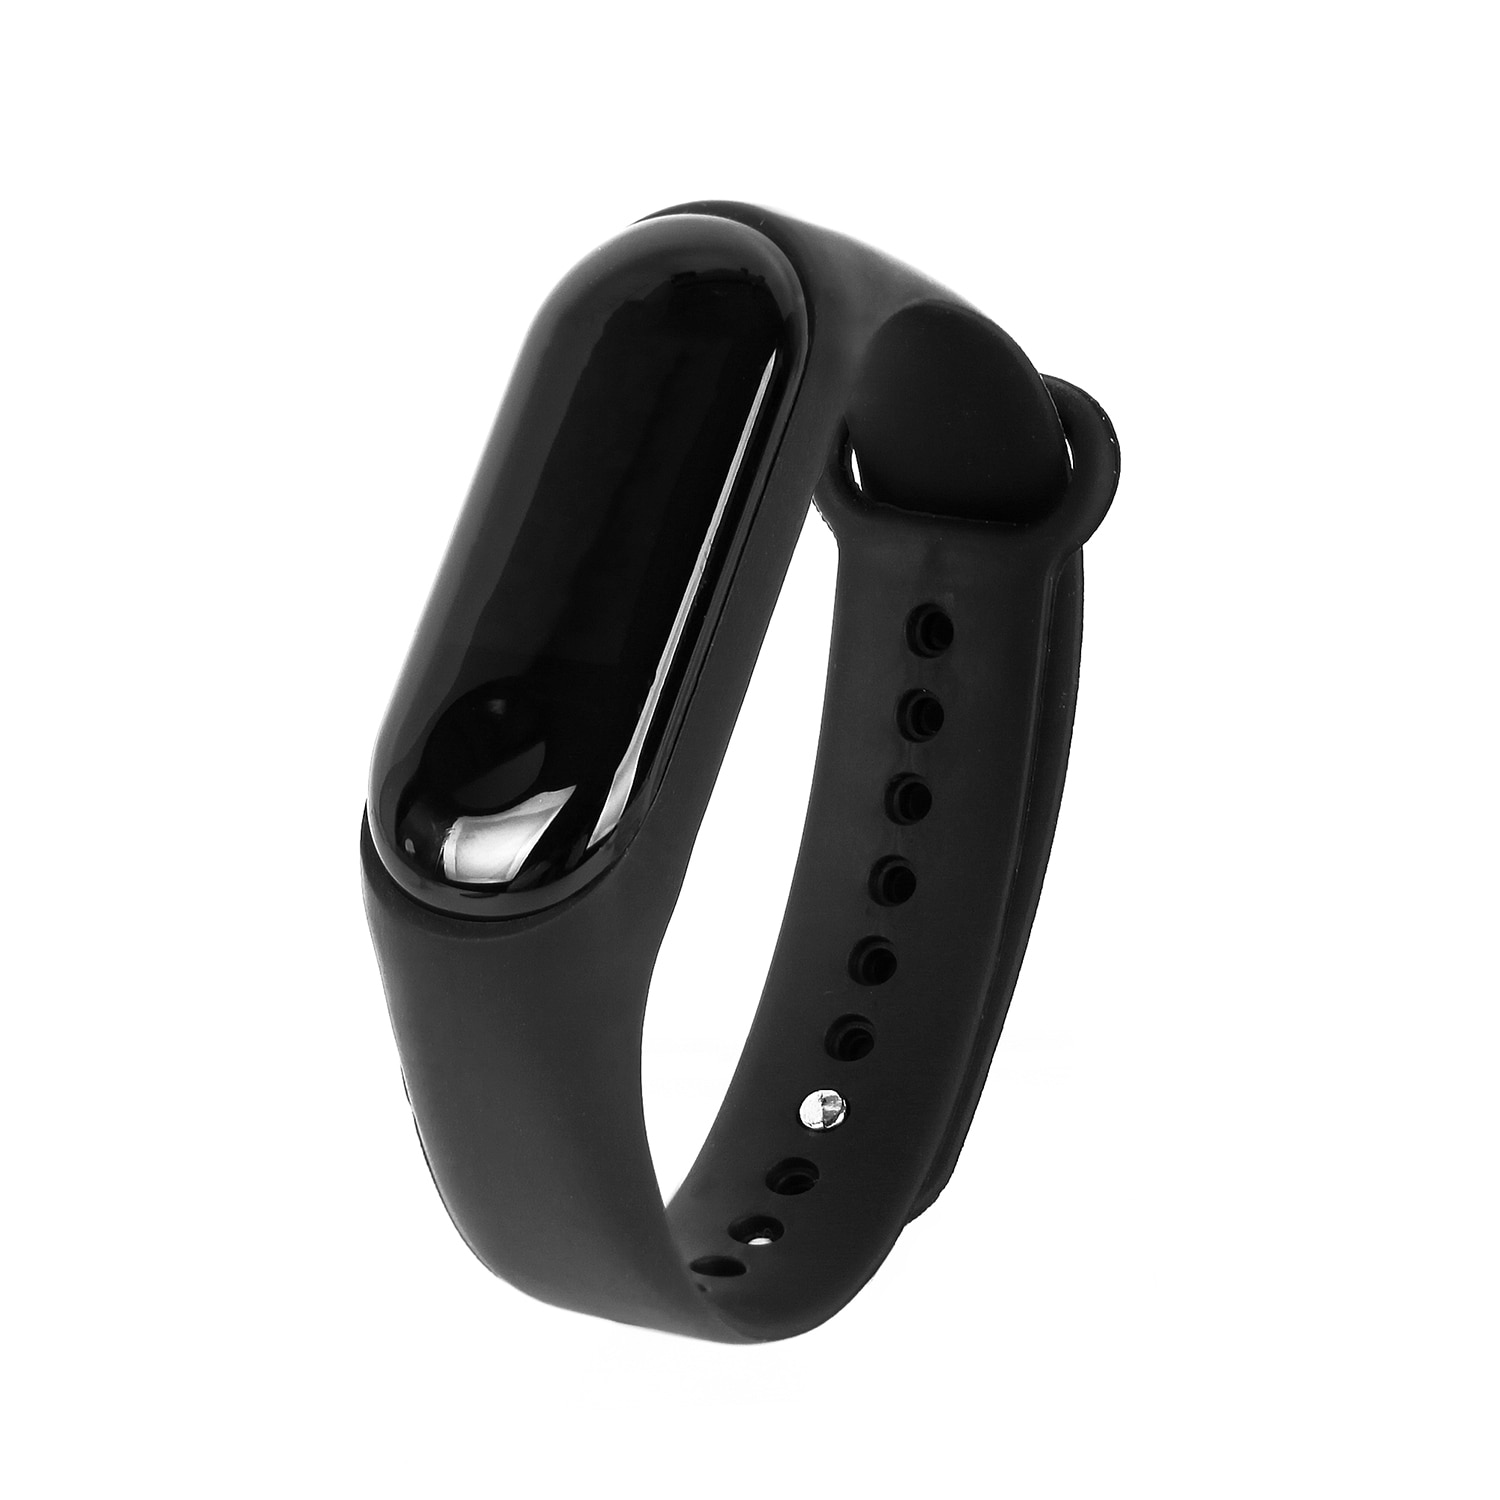 H9fa04162ec8440aea9668a0b28ca7bb81 - M4 Men's Watch Women's Clock Heart Rate Blood Pressure Monitoring Tracker Fitness Wristband Bluetooth Connection Waterproof $^$